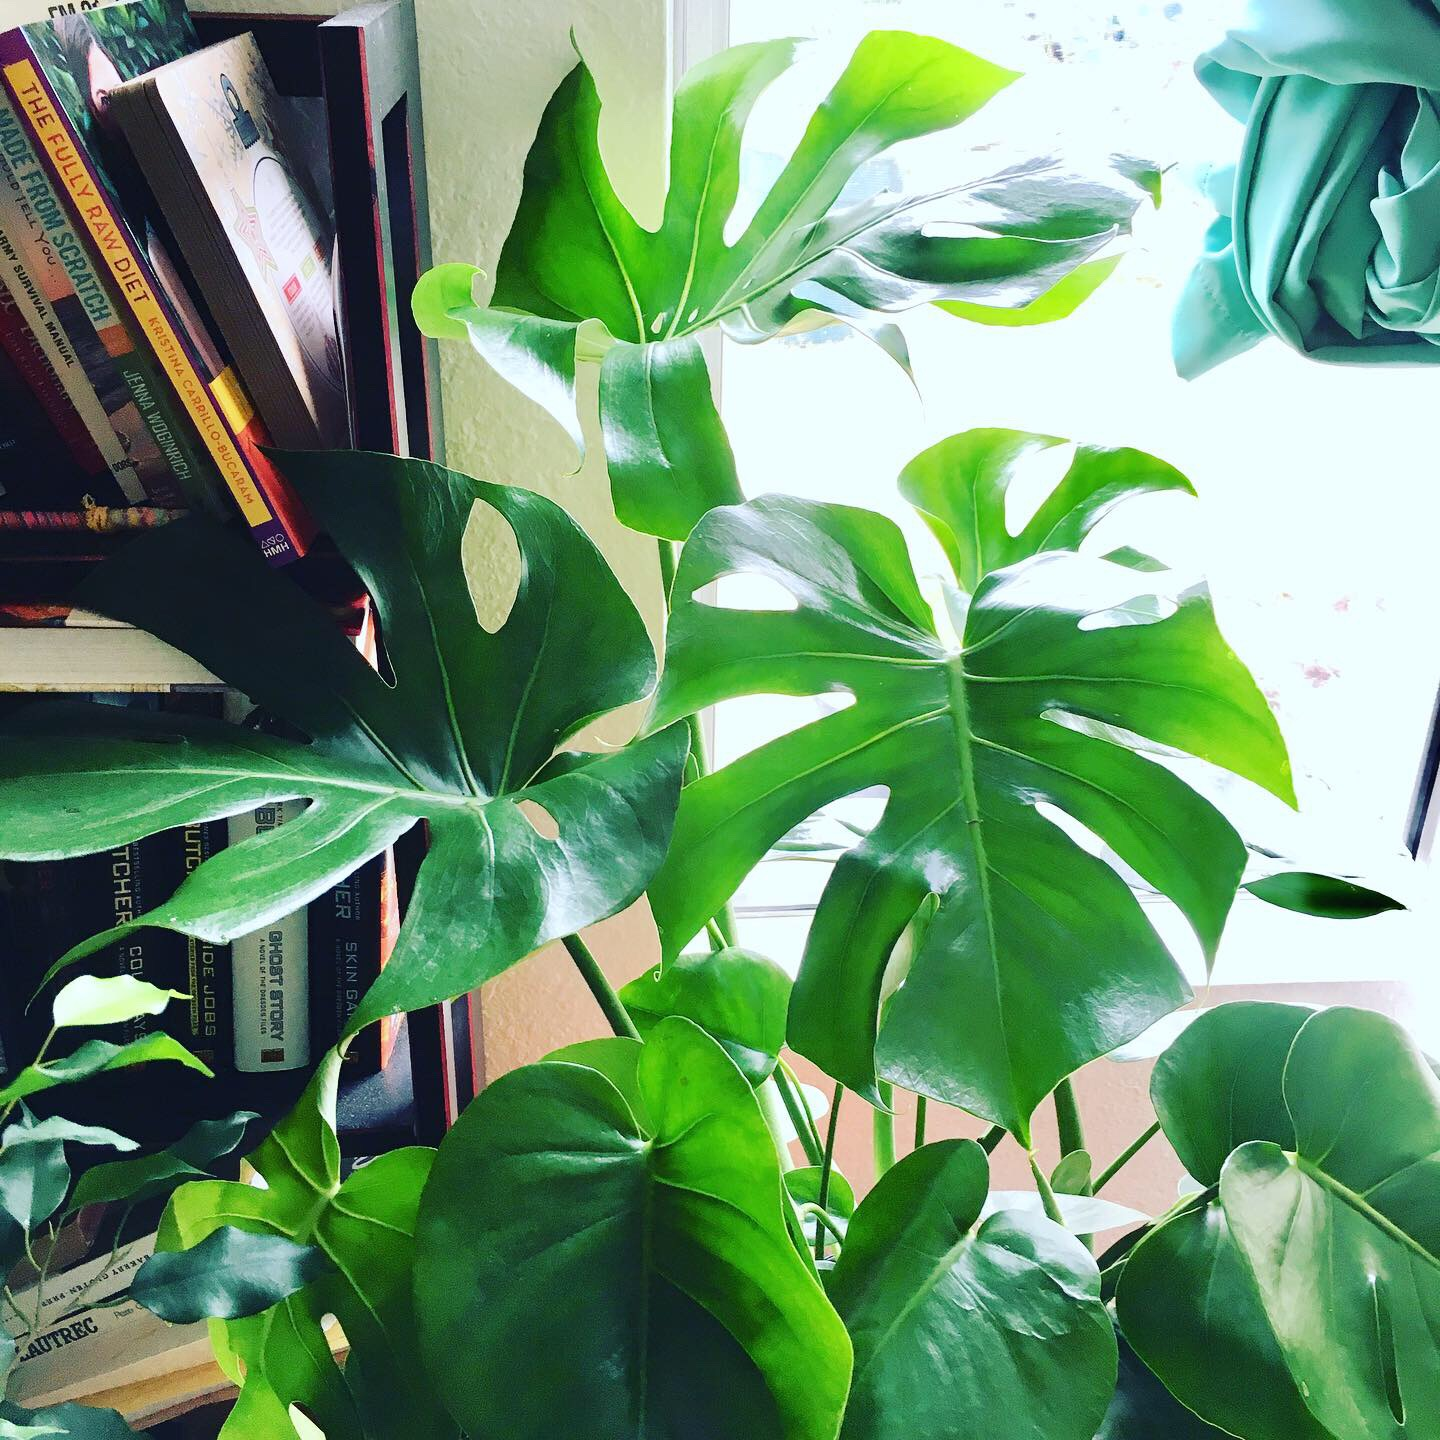 My new Monstera Deliciosa plant - I finally found you!